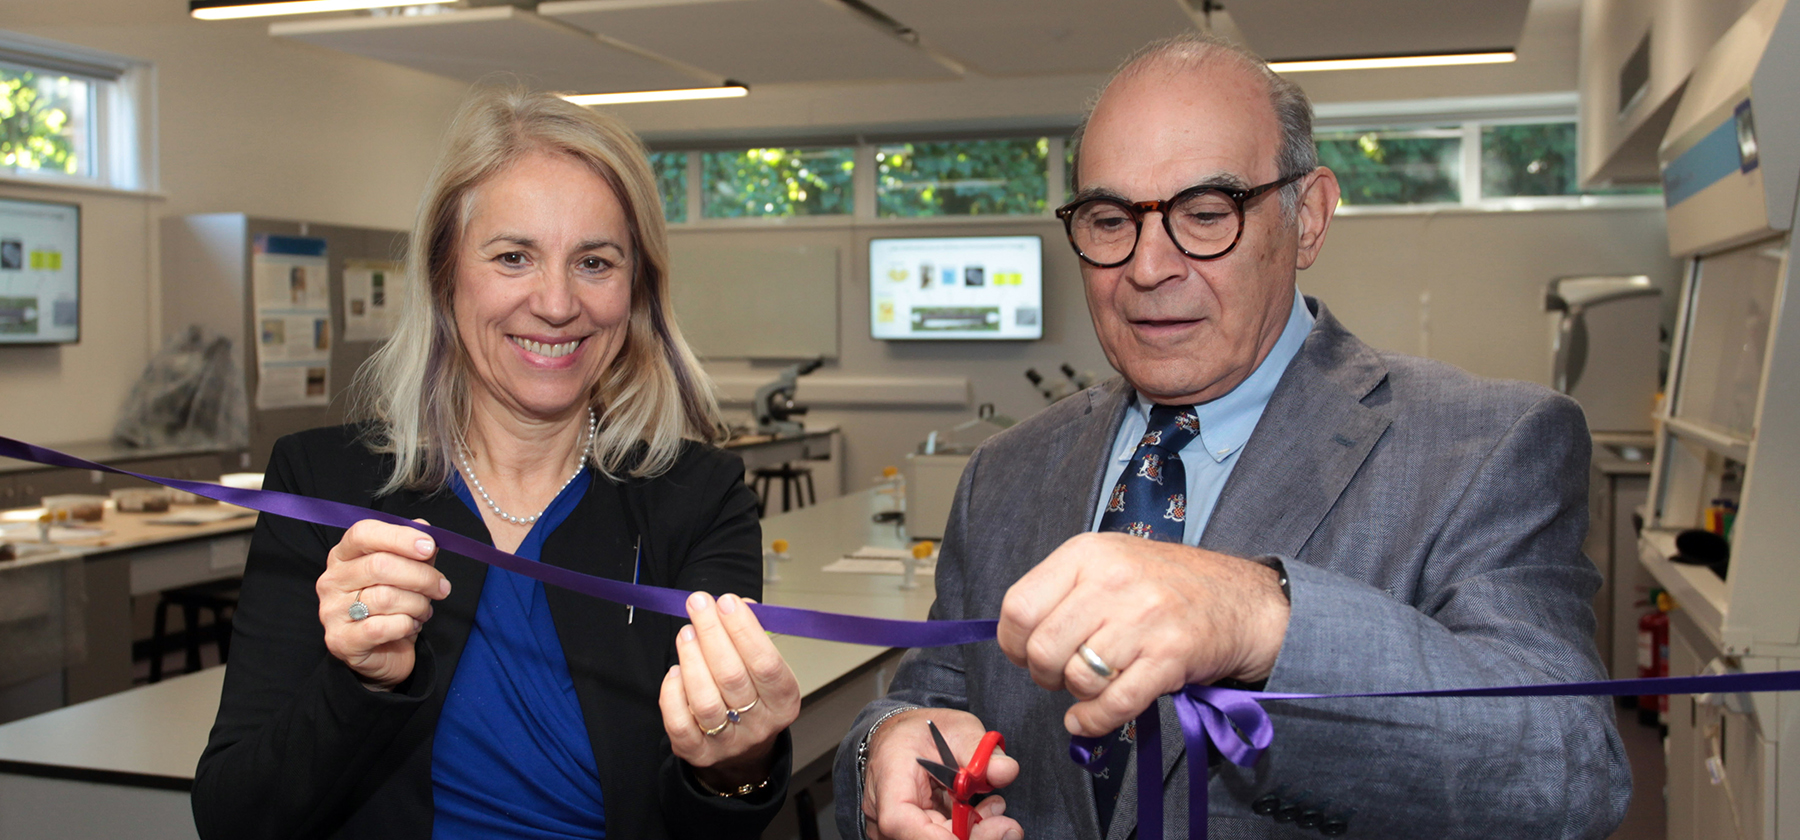 David Suchet cutting a purple ribbon in the forensics lab